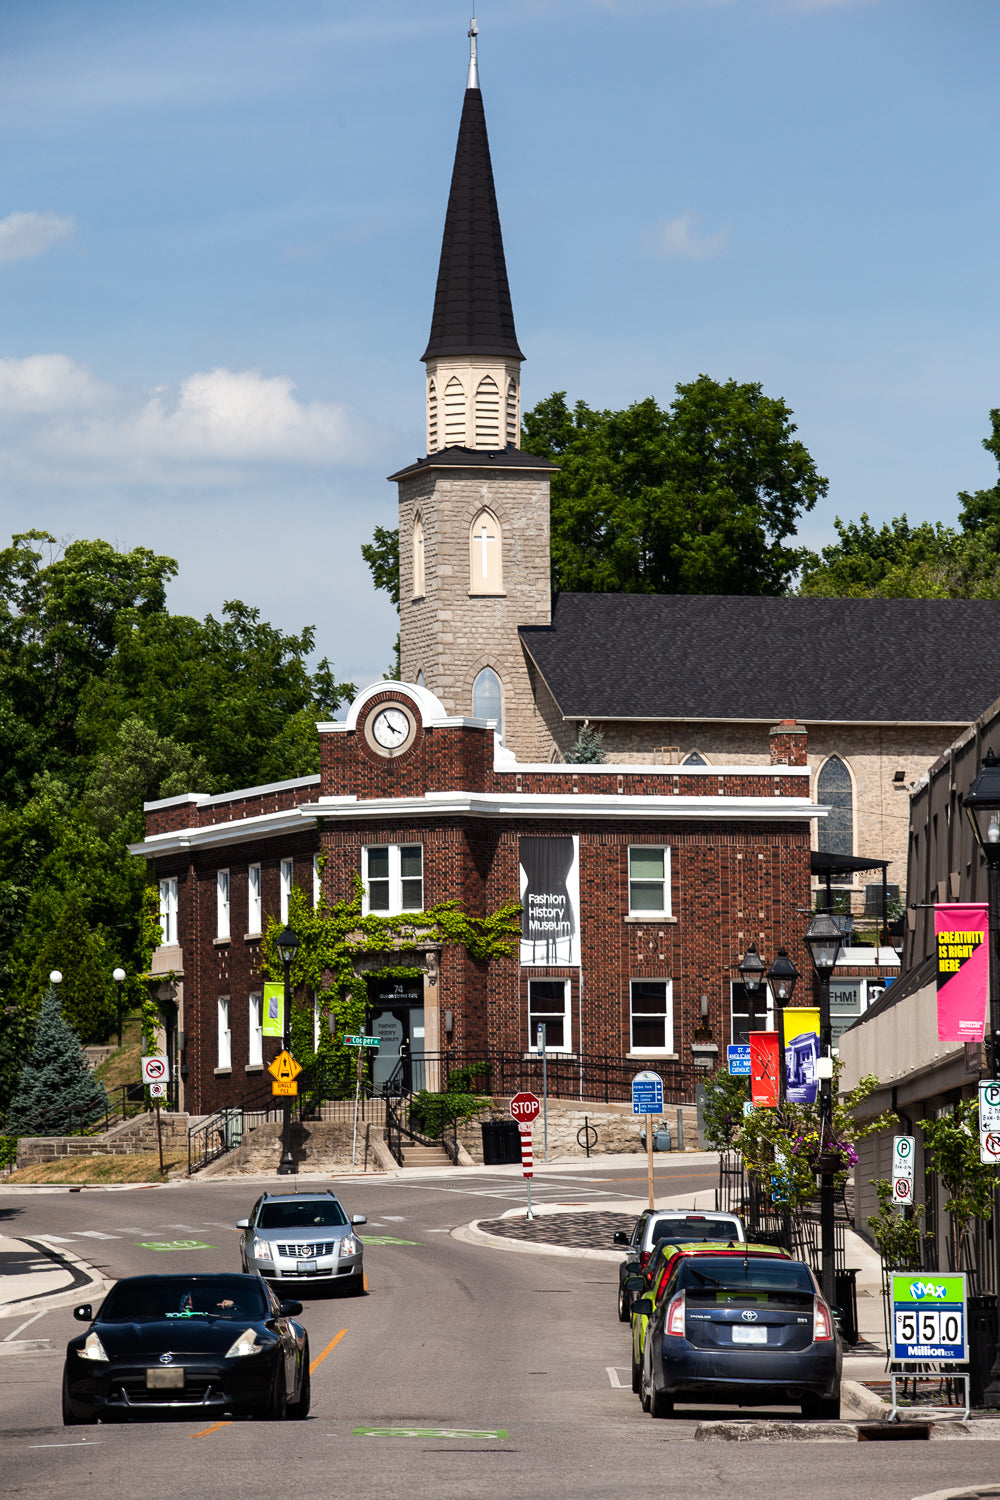 Photo of Hespeler Village Queen Street, old post office, now fashion history museum by Laura Cook of Vision Photography